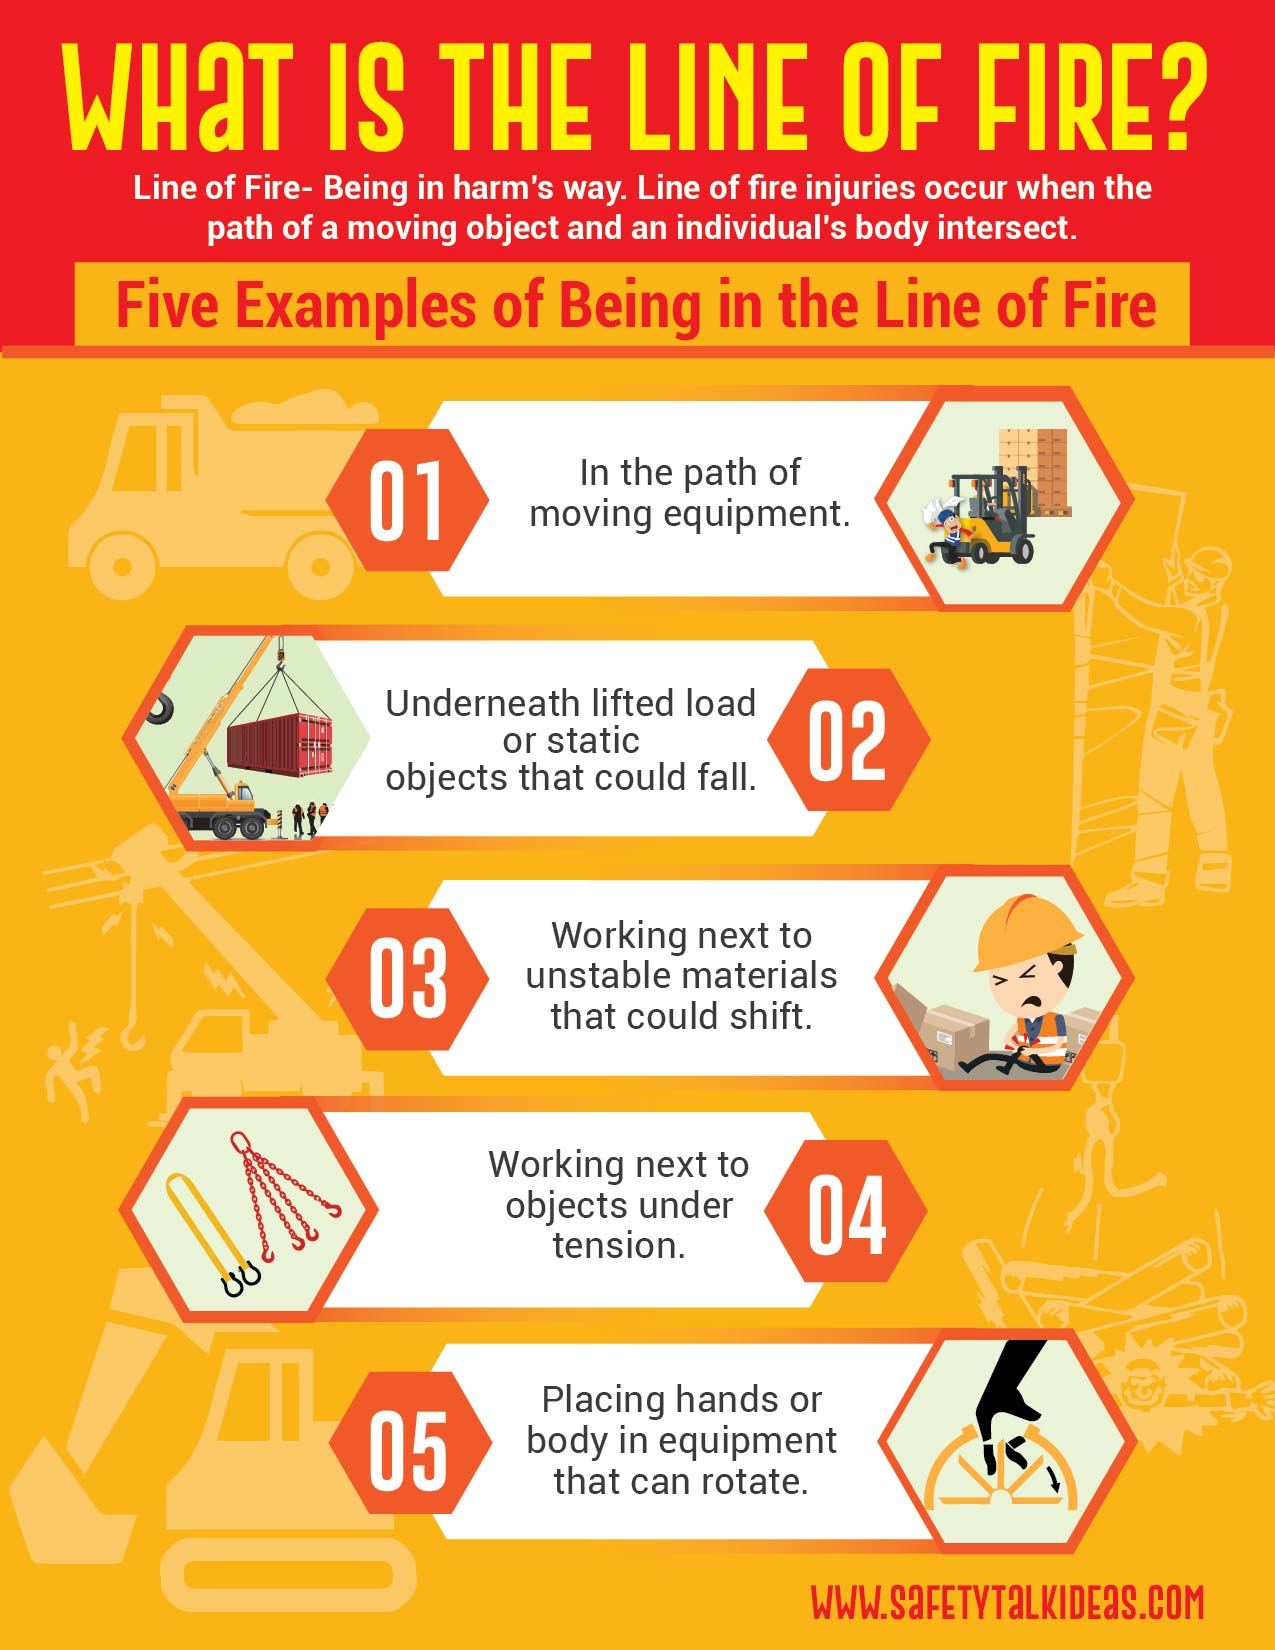 Line of Fire Hazards - Safety Talk Ideas